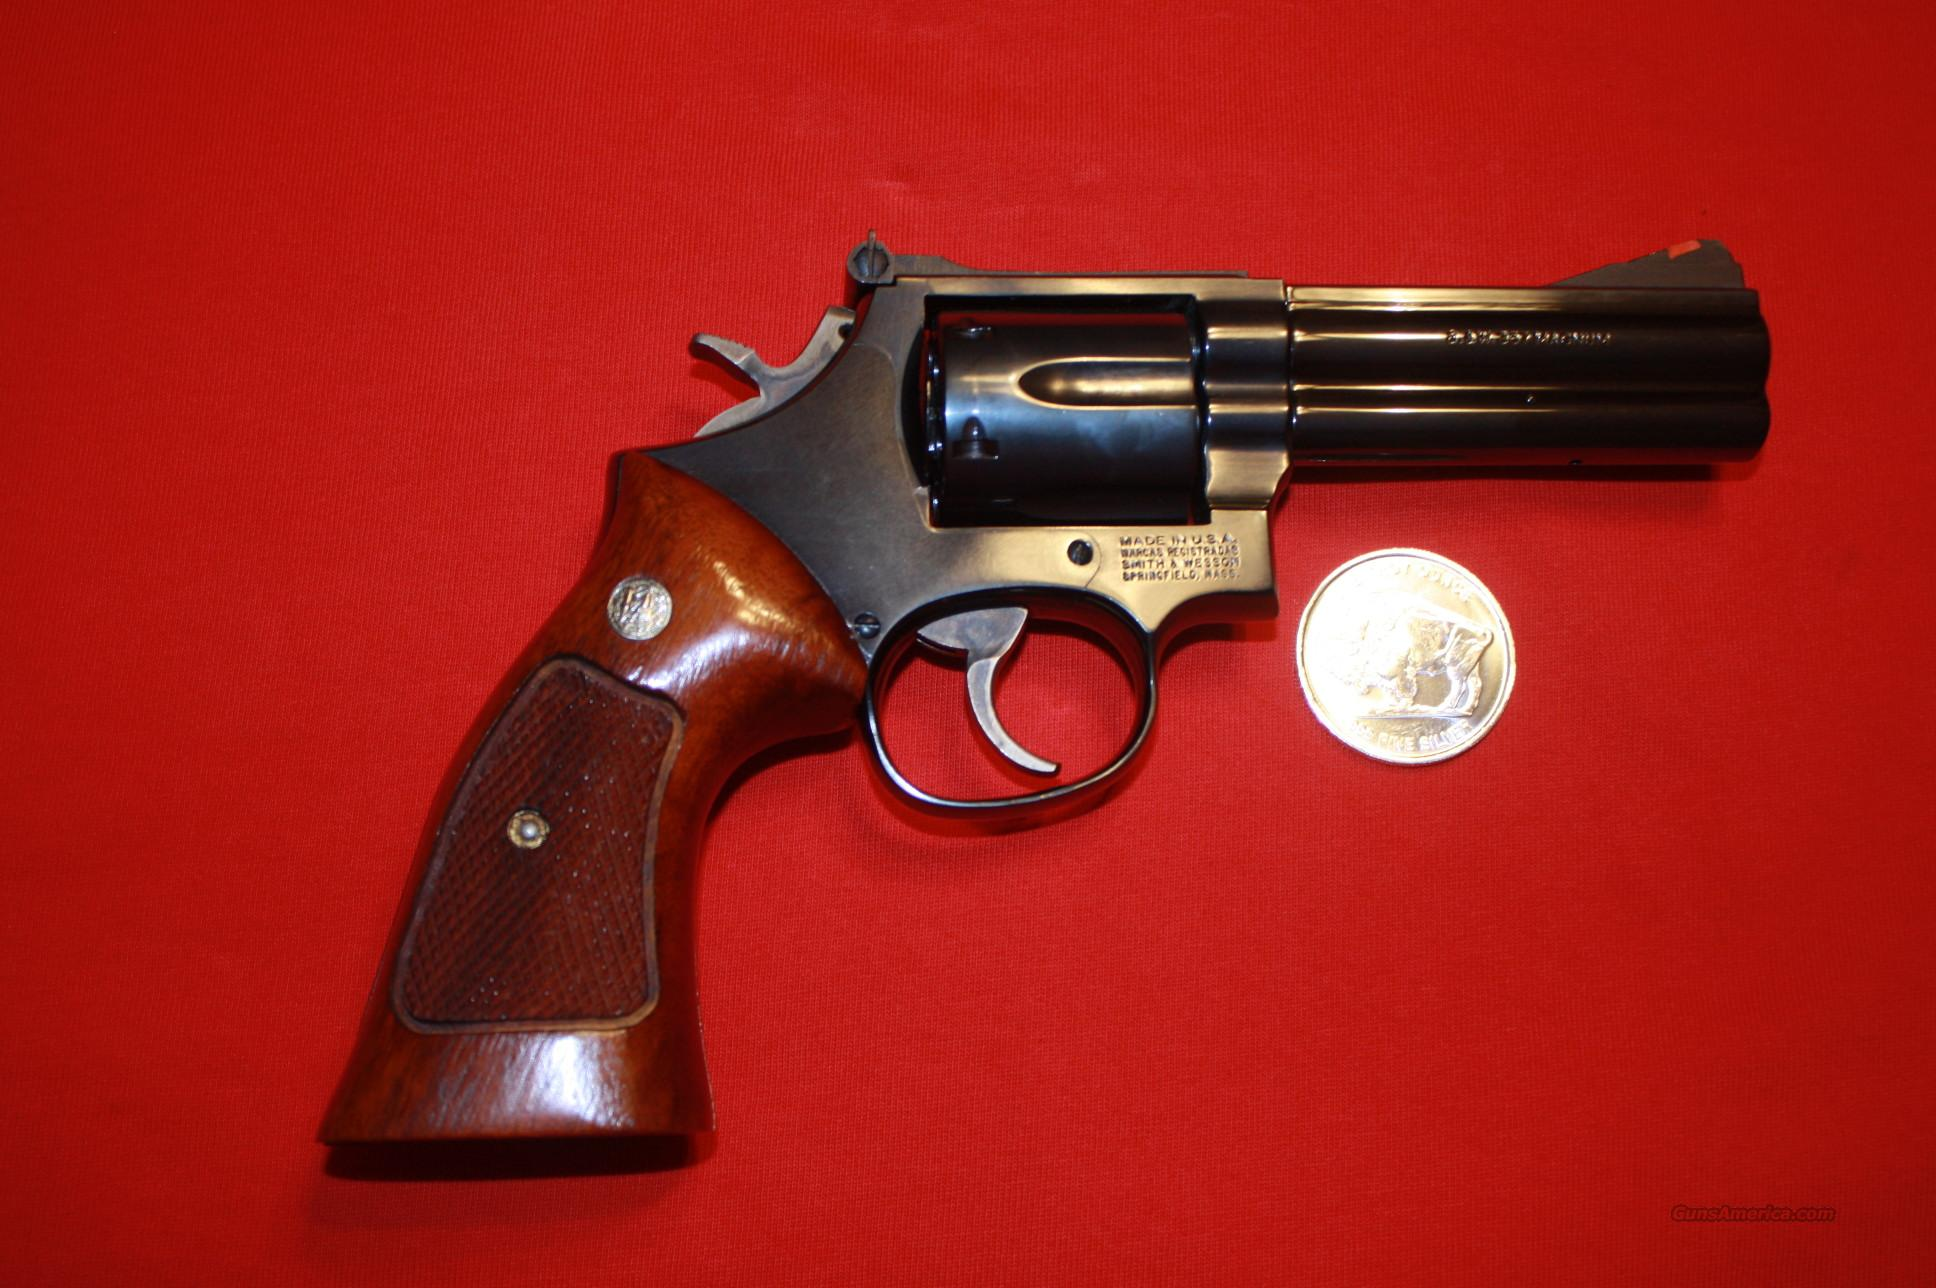 SMITH & WESSON MODEL 586-4 .357 MAG  Guns > Pistols > Smith & Wesson Revolvers > Full Frame Revolver